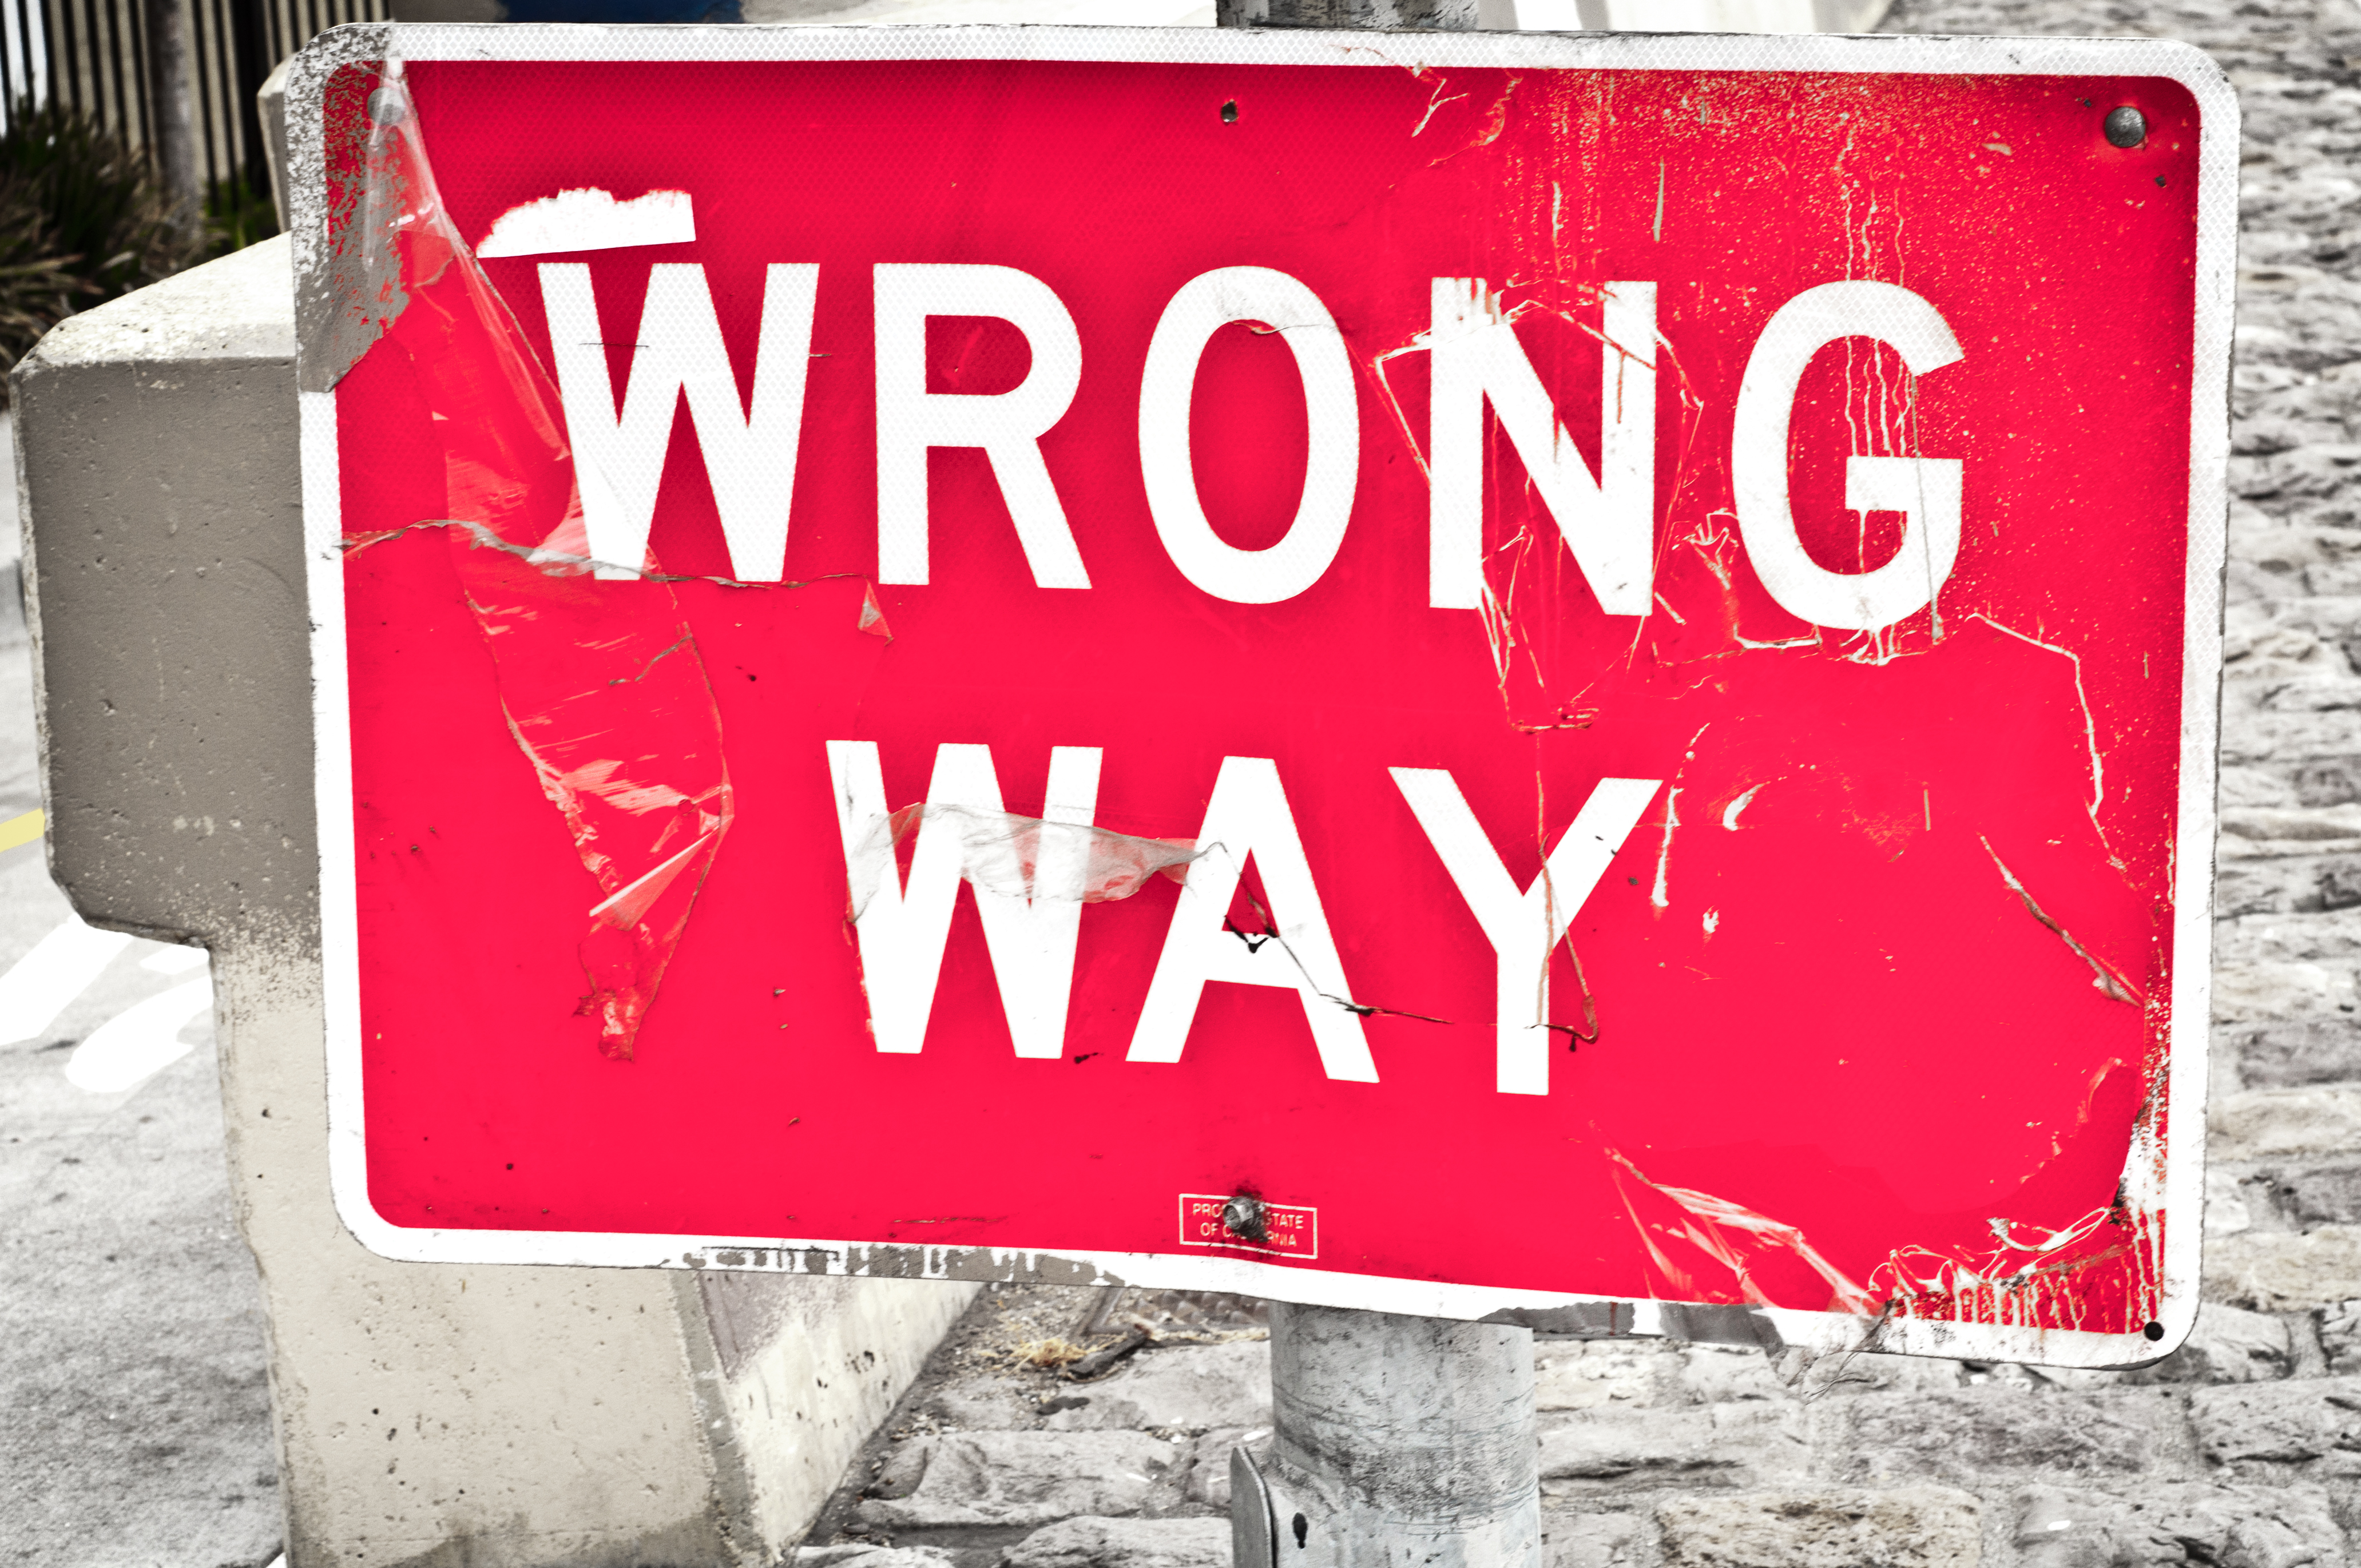 PHOTO COURTESY David Goering FLICKR.COM | A wrong way sign waiting to make me question life.